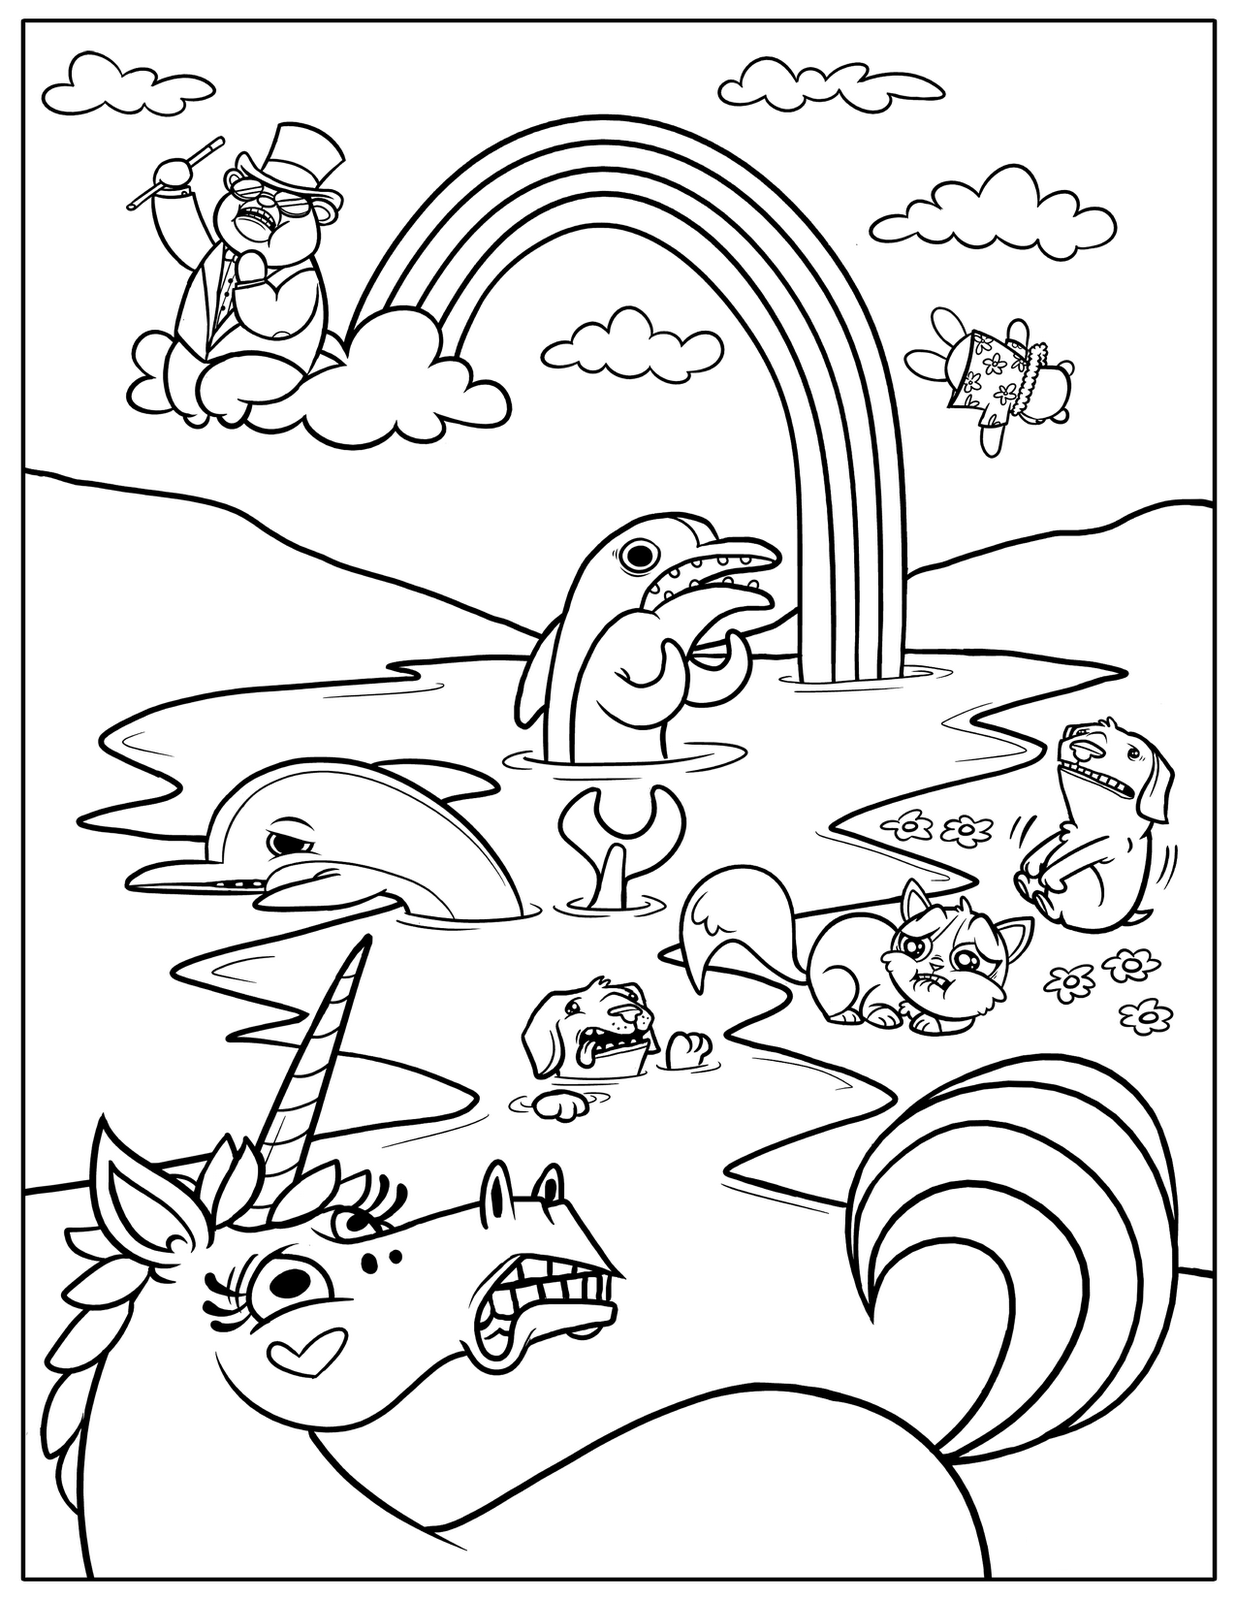 Colouring in pictures for toddlers - Rainbow Coloring Pages Kids Printable